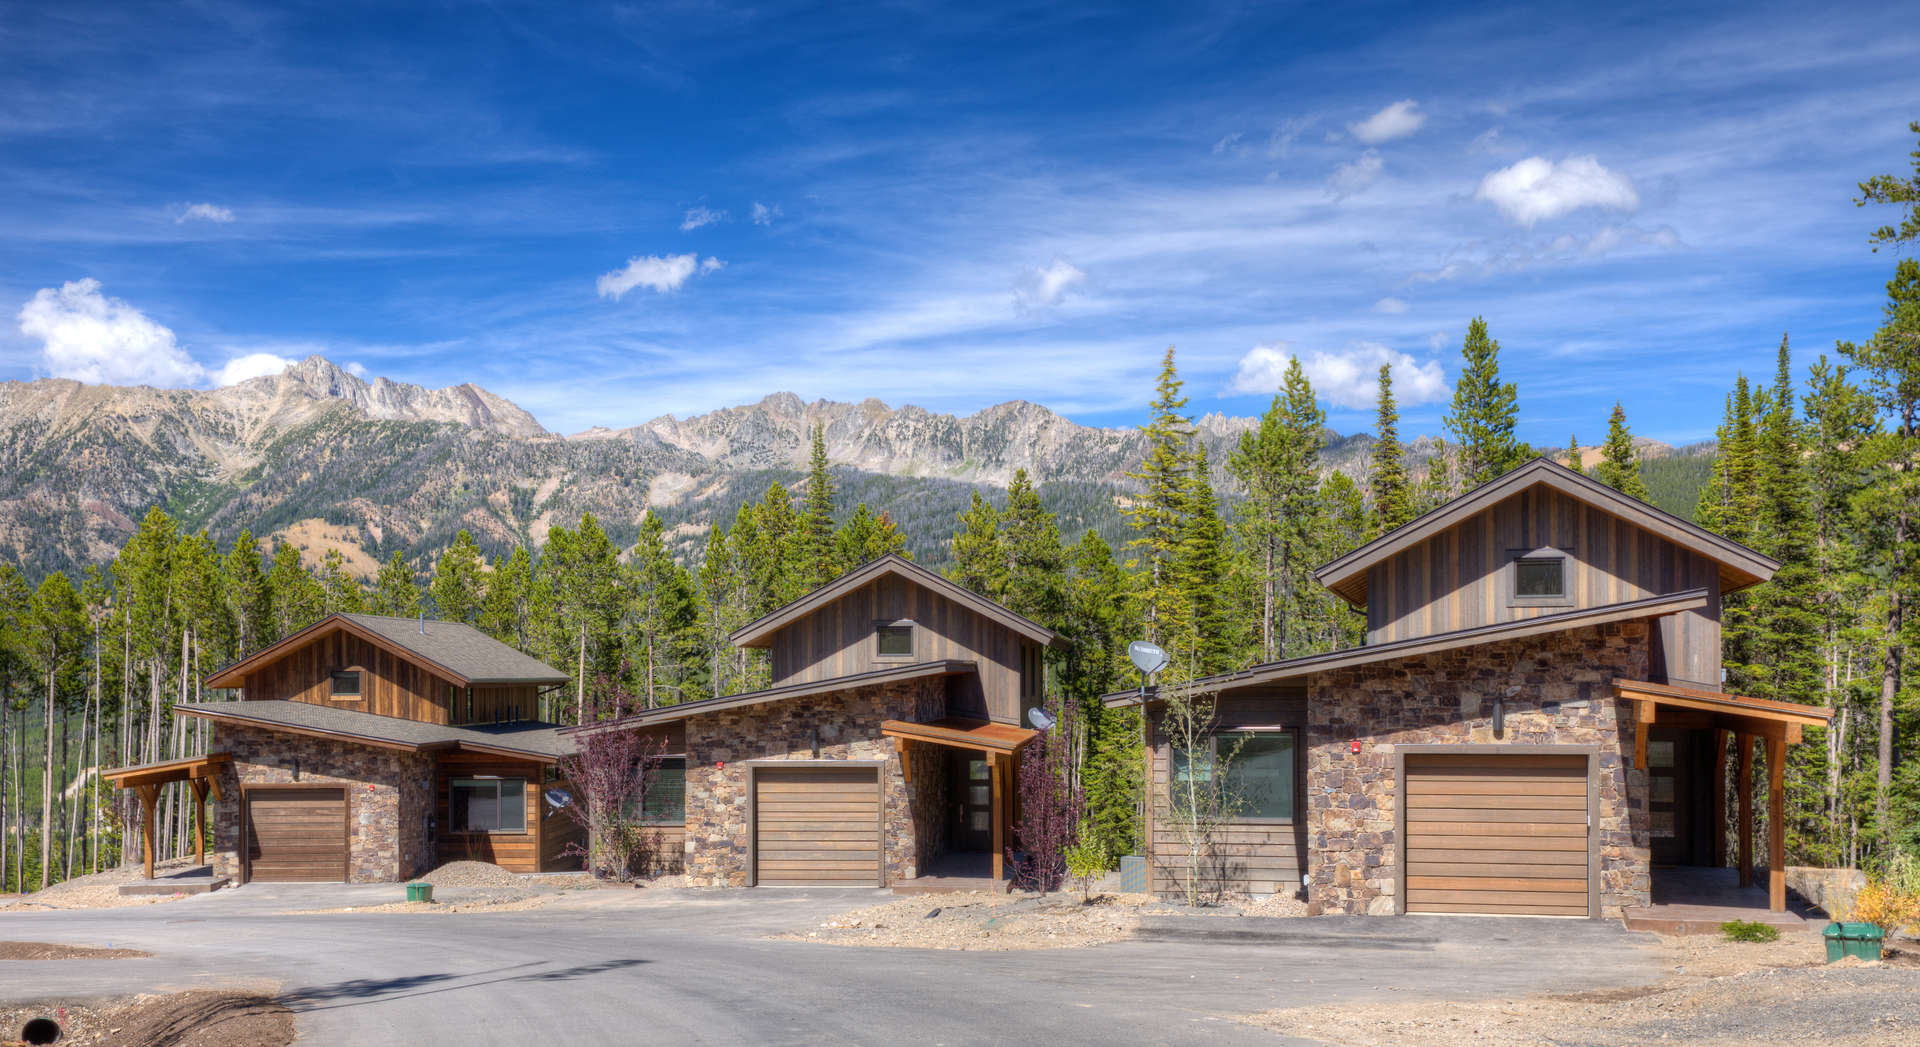 Luxury vacation rentals usa - Montana - Big sky - No location 4 - Blackhawk - Image 1/22